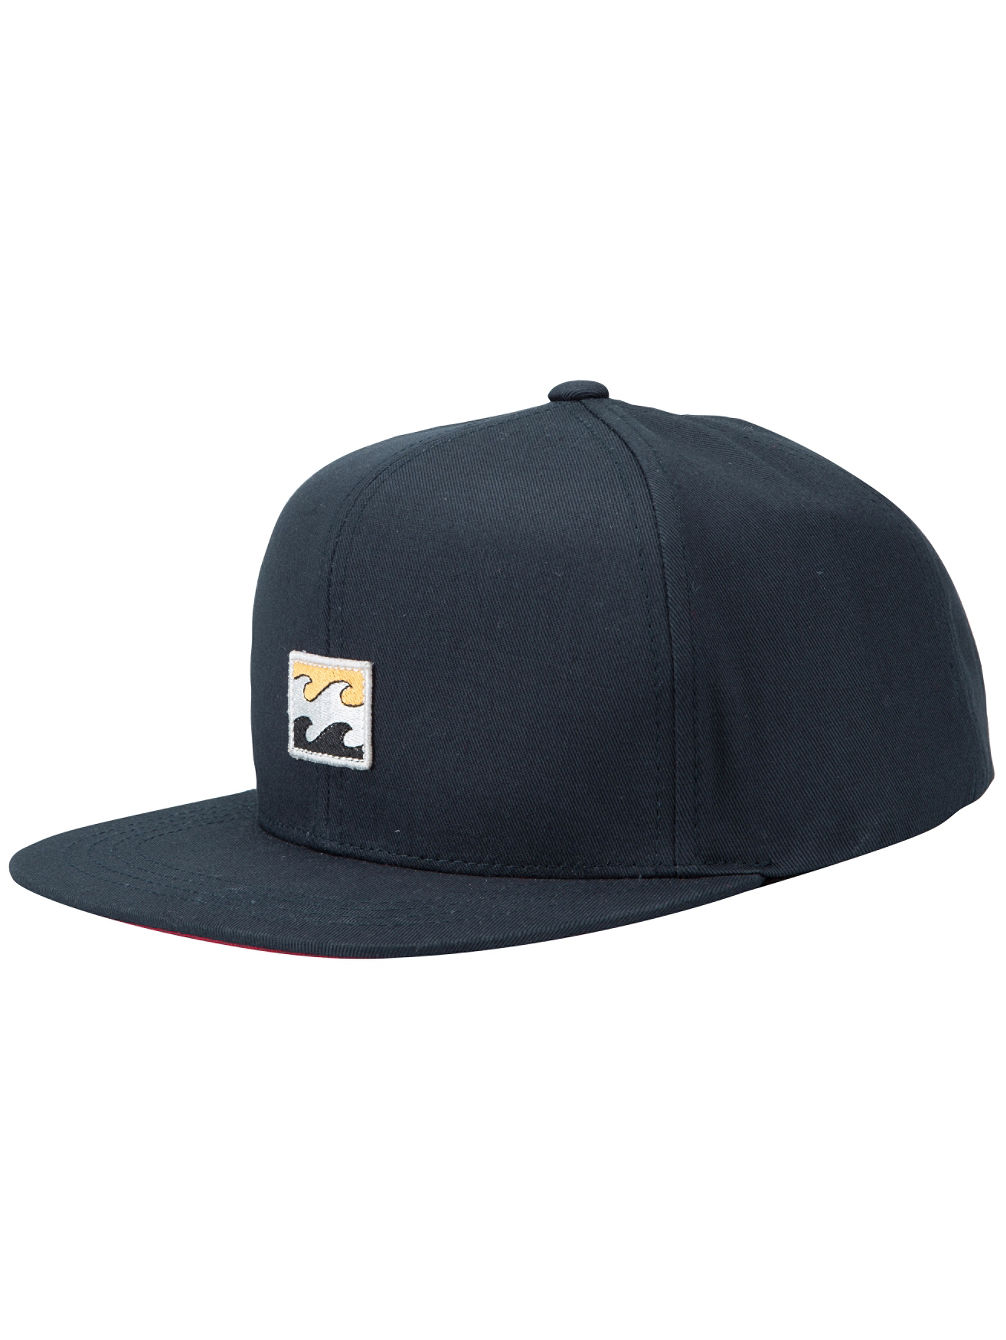 billabong-operative-snapback-cap